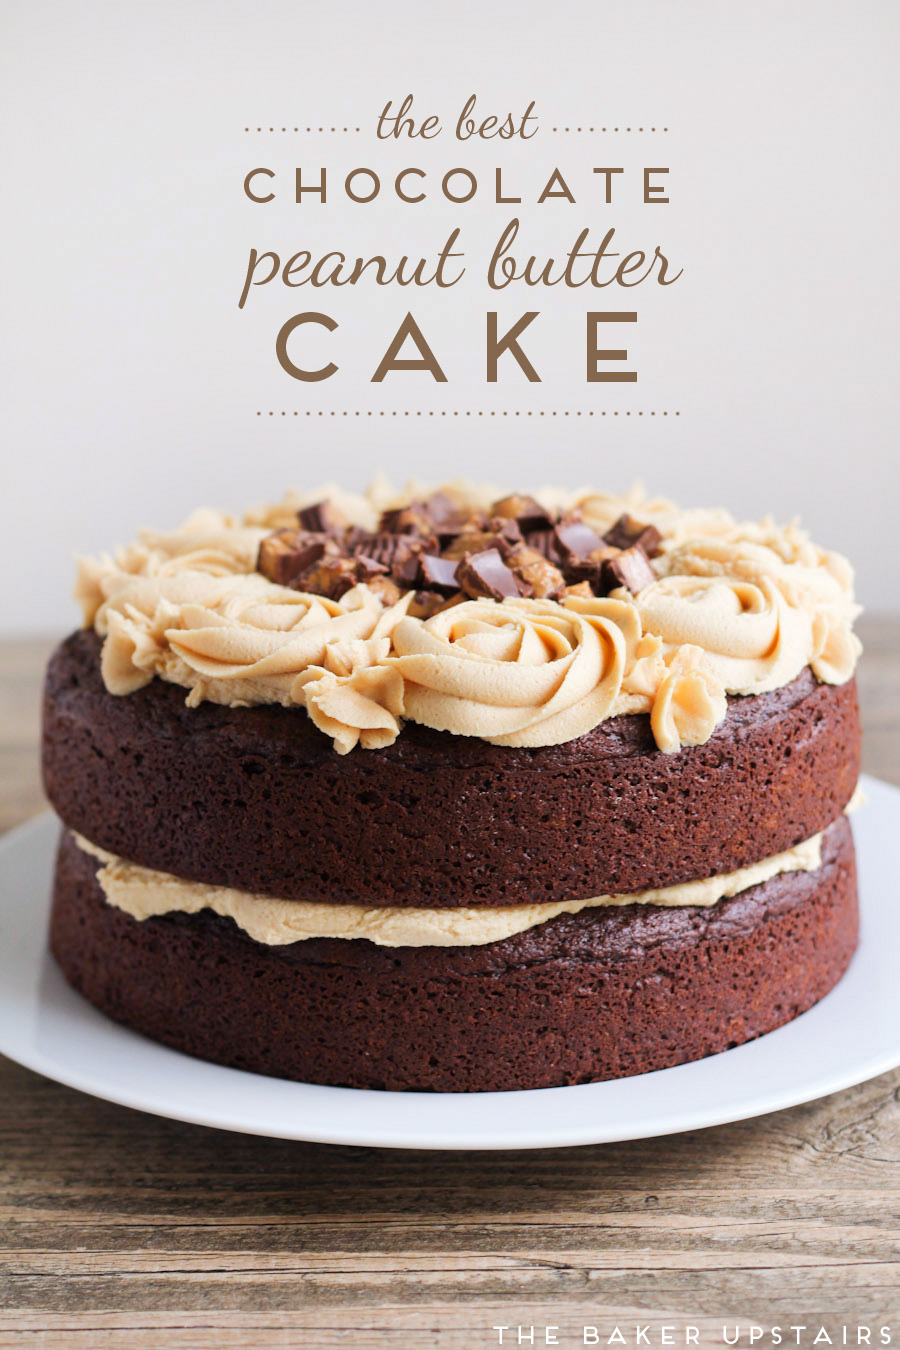 The Baker Upstairs the best chocolate peanut butter cake